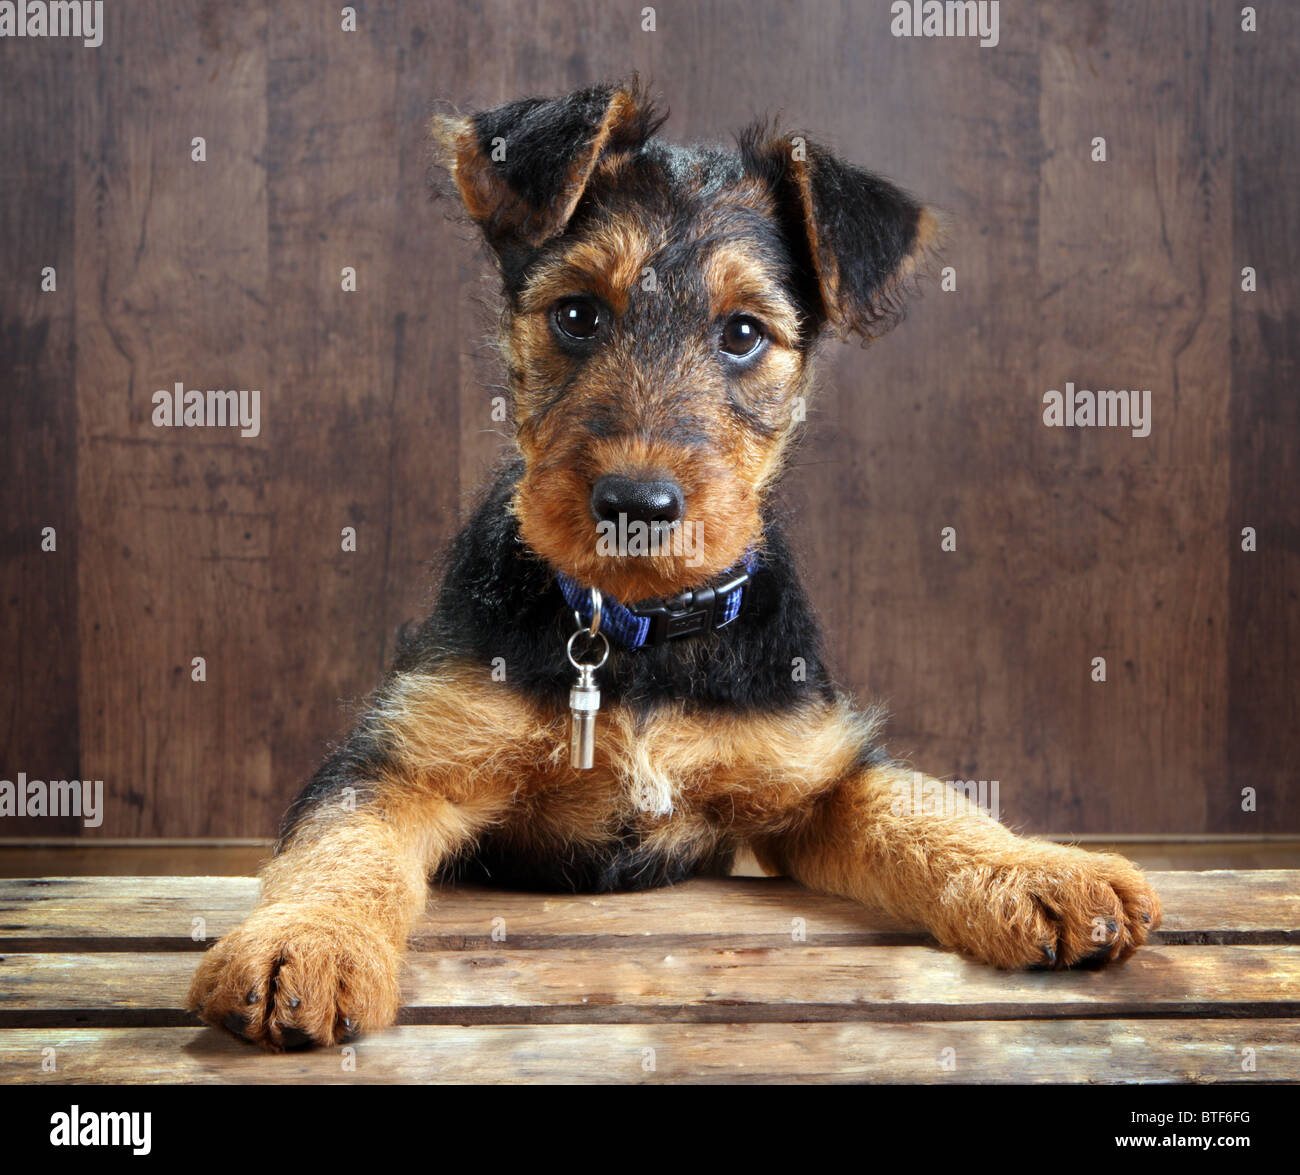 8 weeks old little airedale terrier puppy dog with its paws on a crate - Stock Image